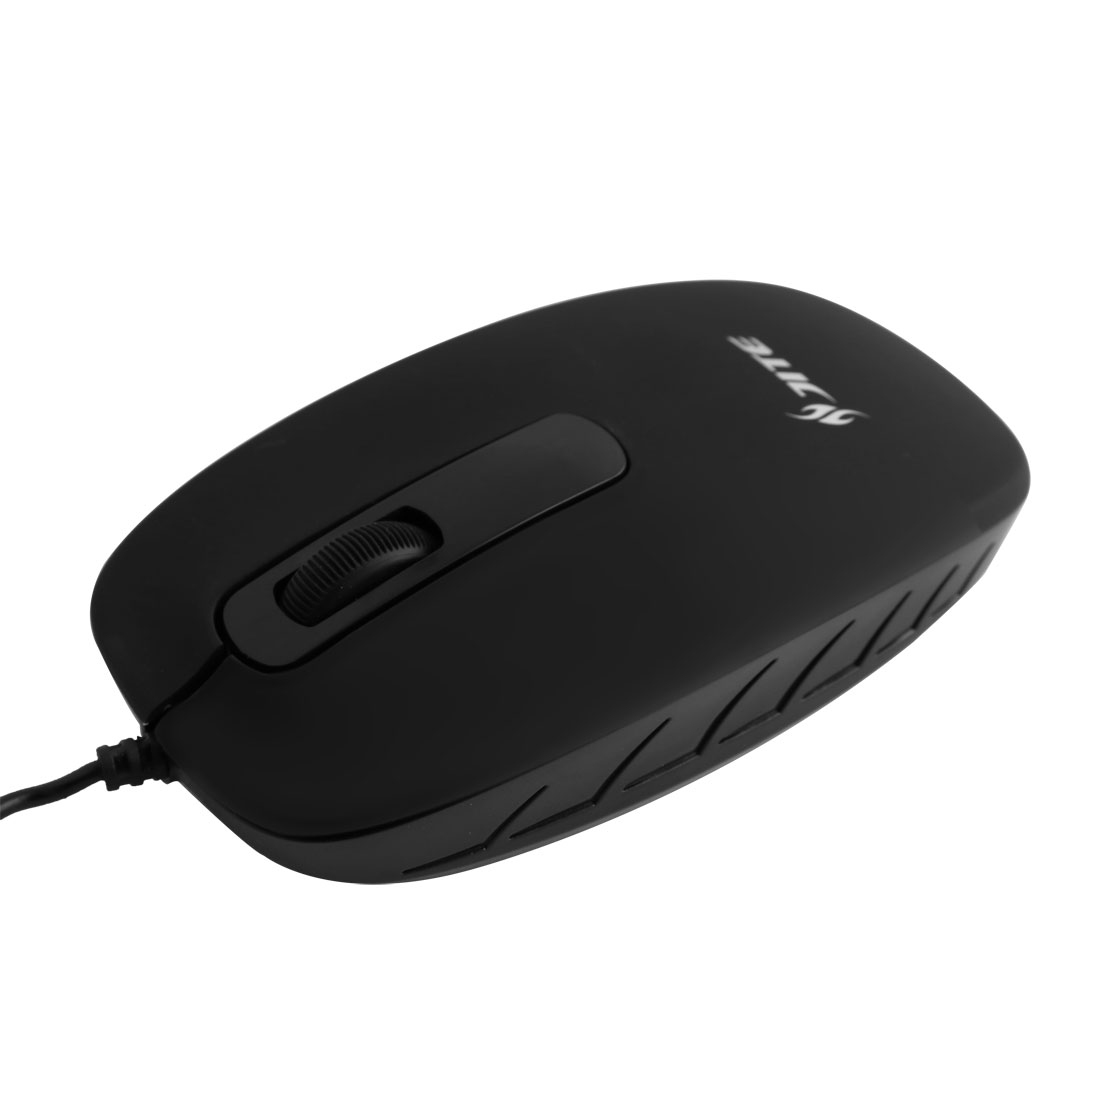 Notebook Computer 1000 DPI Red LED Wired Optical Gaming Mouse Mice Black